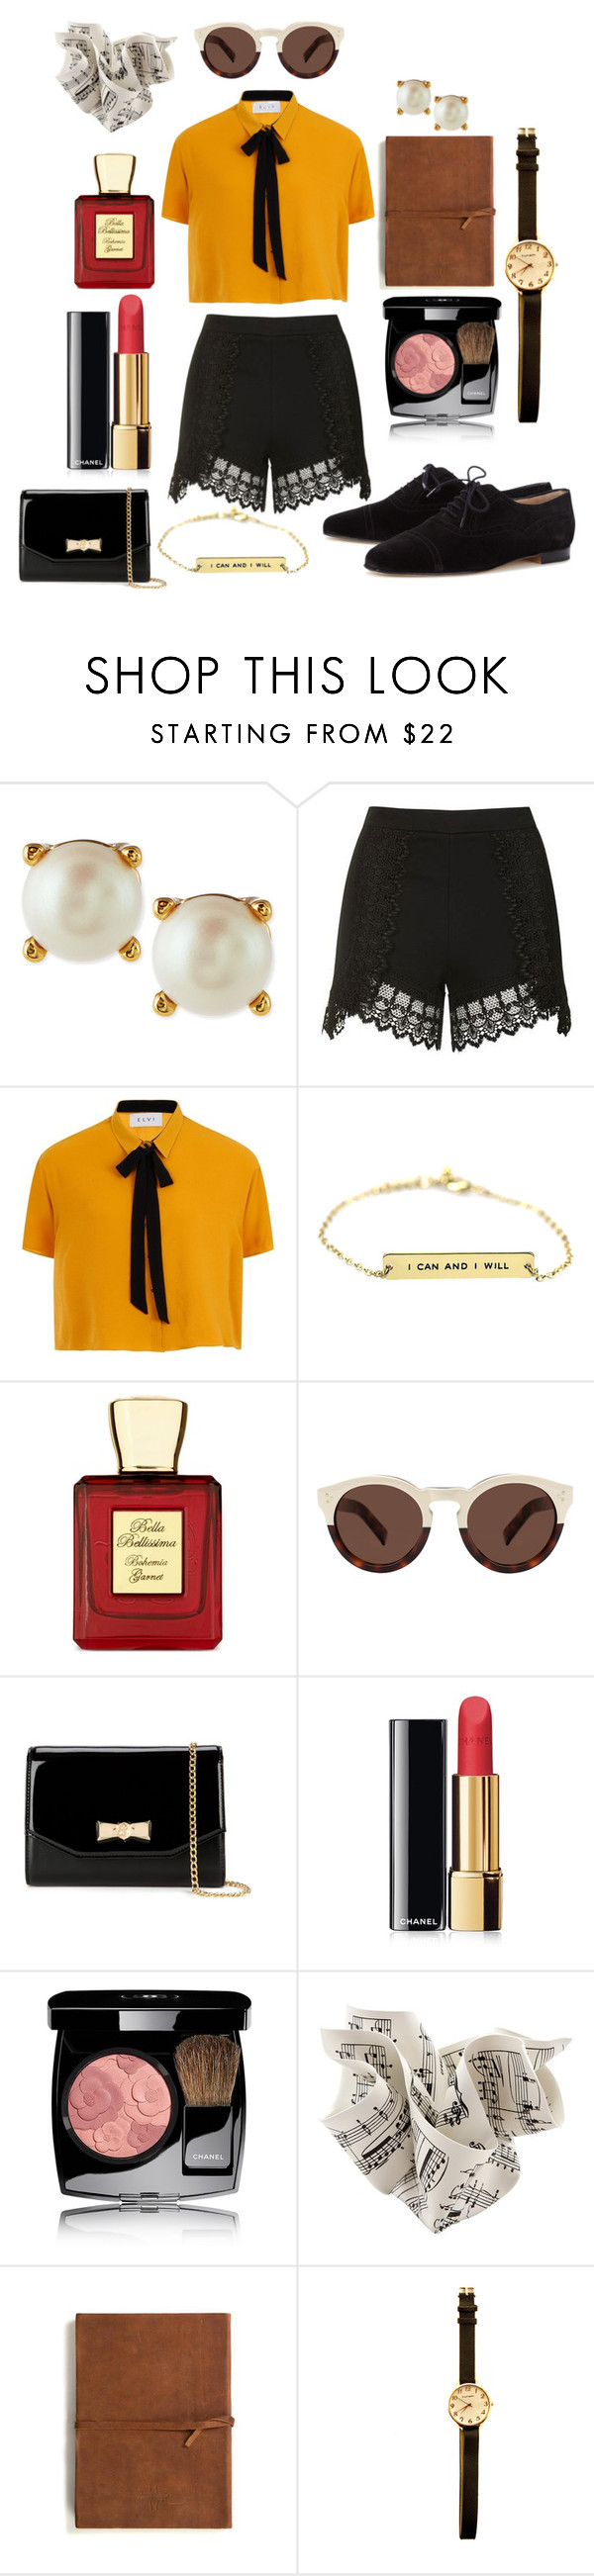 """Untitled #168"" by angelinaap on Polyvore featuring Kate Spade, Topshop, Elvi, Bella Bellissima, Illesteva, Ted Baker, Chanel, Emili and Manolo Blahnik"